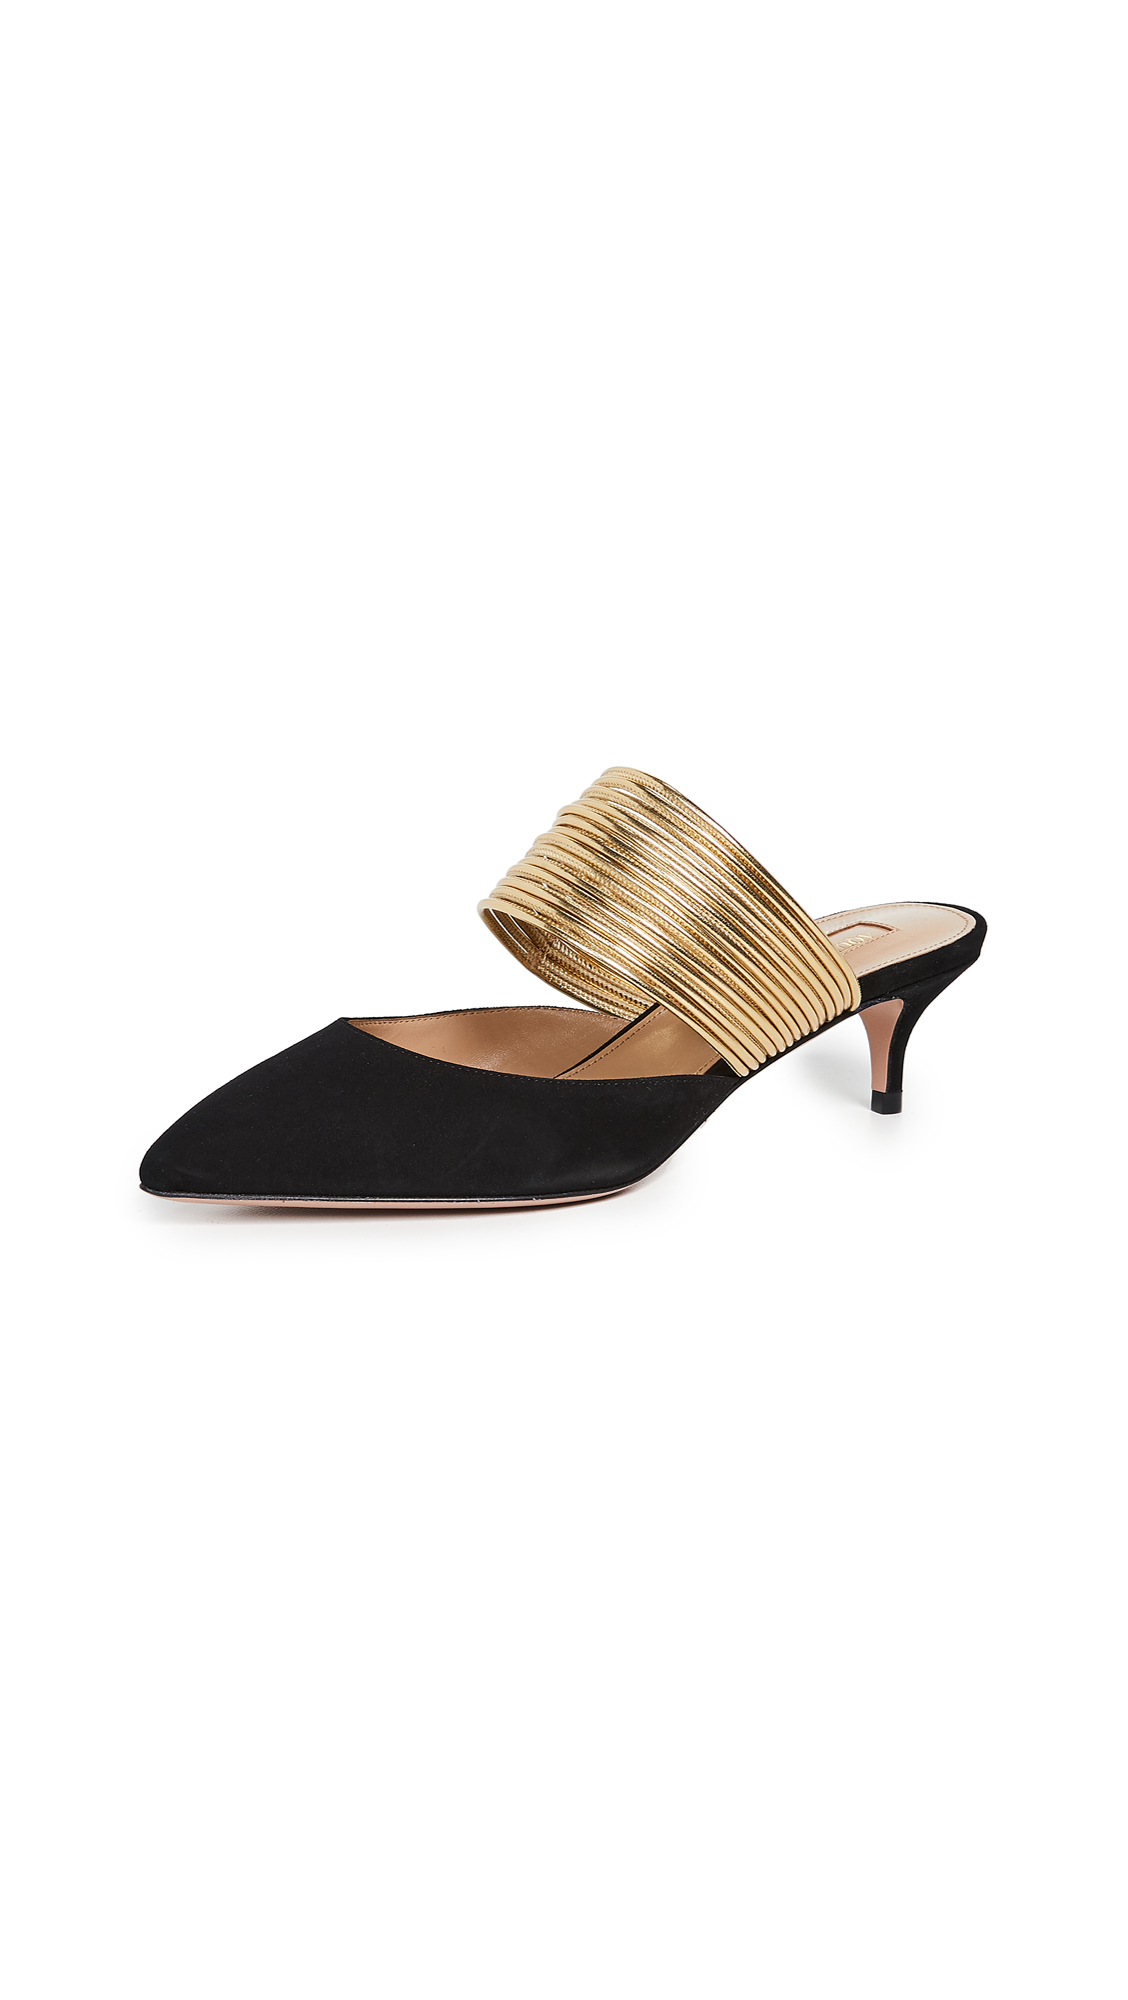 Aquazzura Rendez Vous 45mm Mules - Black/Gold